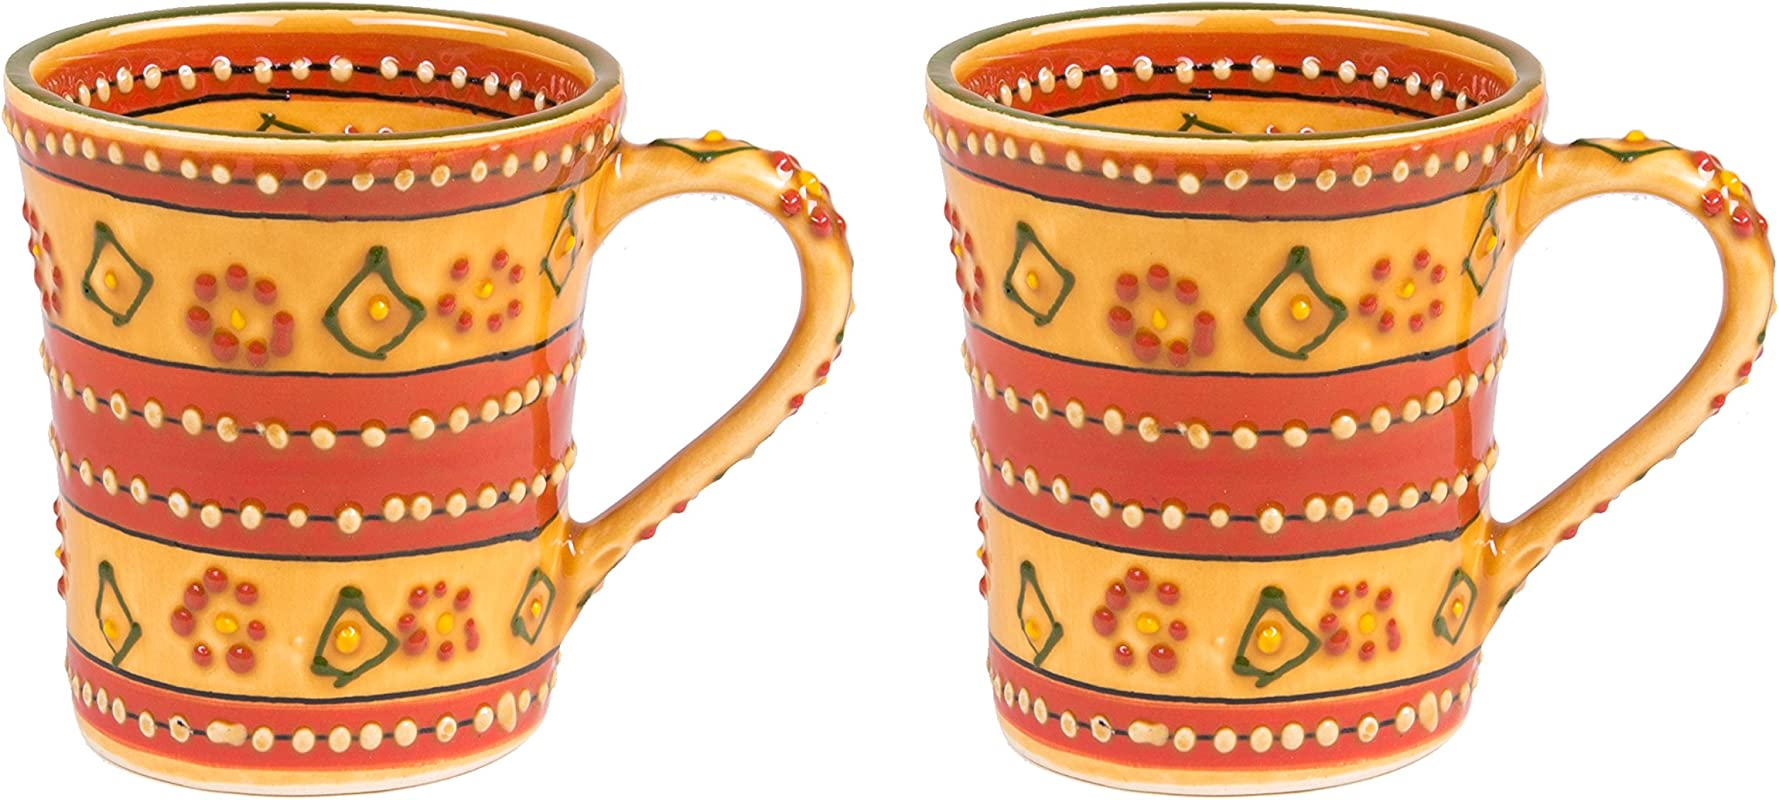 Mexican Themed Coffee Mugs Hand Painted And Custom Made Traditional Mexican Pottery Bright Colorful Lead Free And Superior Quality